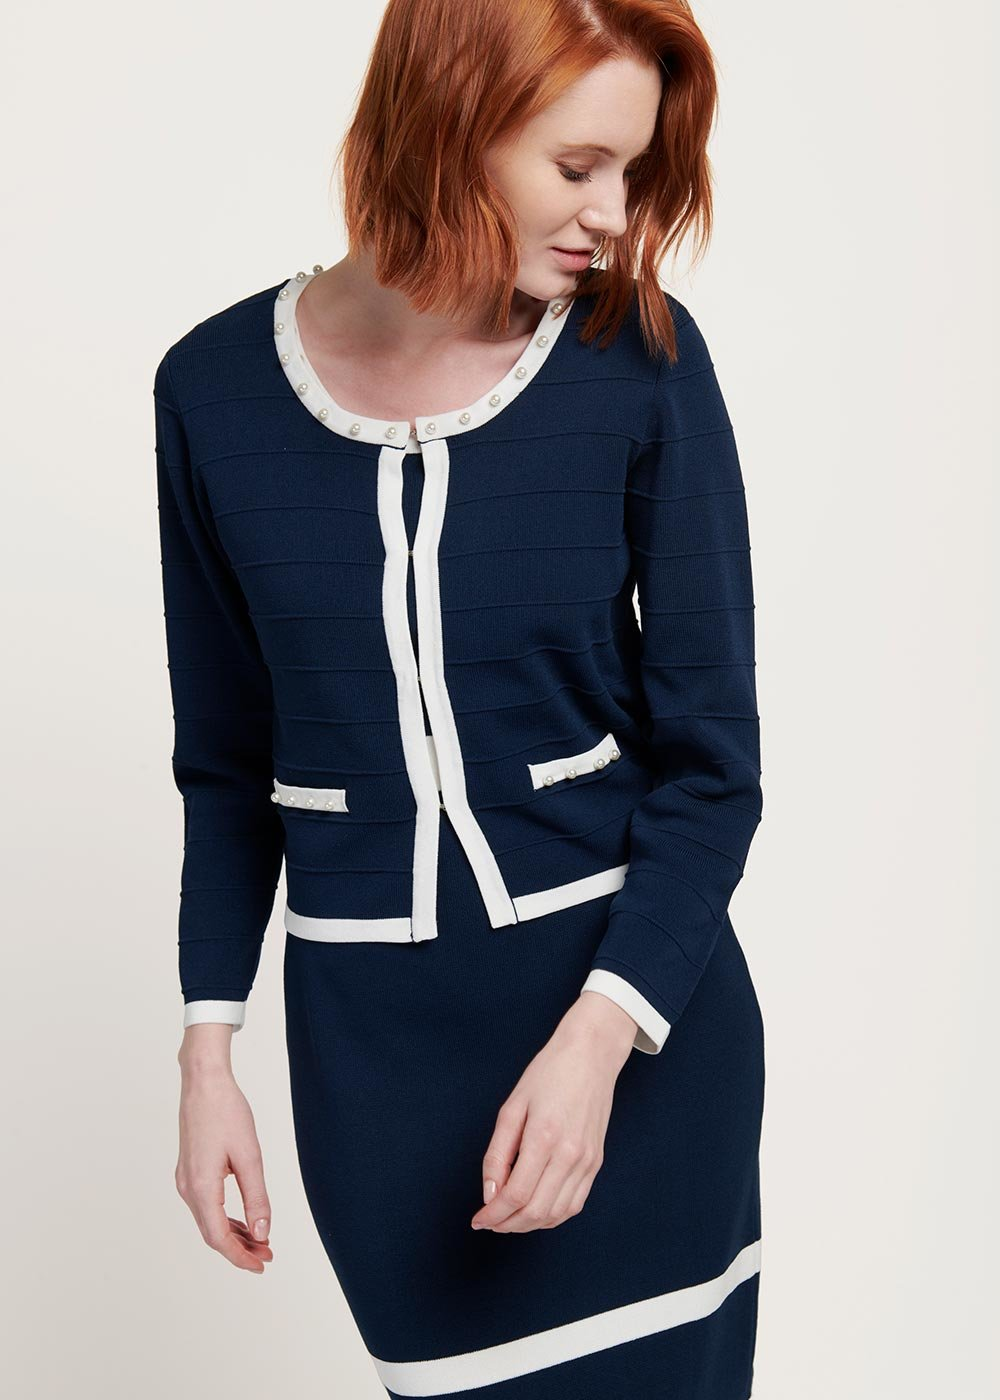 Calvin two-tone shrug - Medium Blue / White - Woman